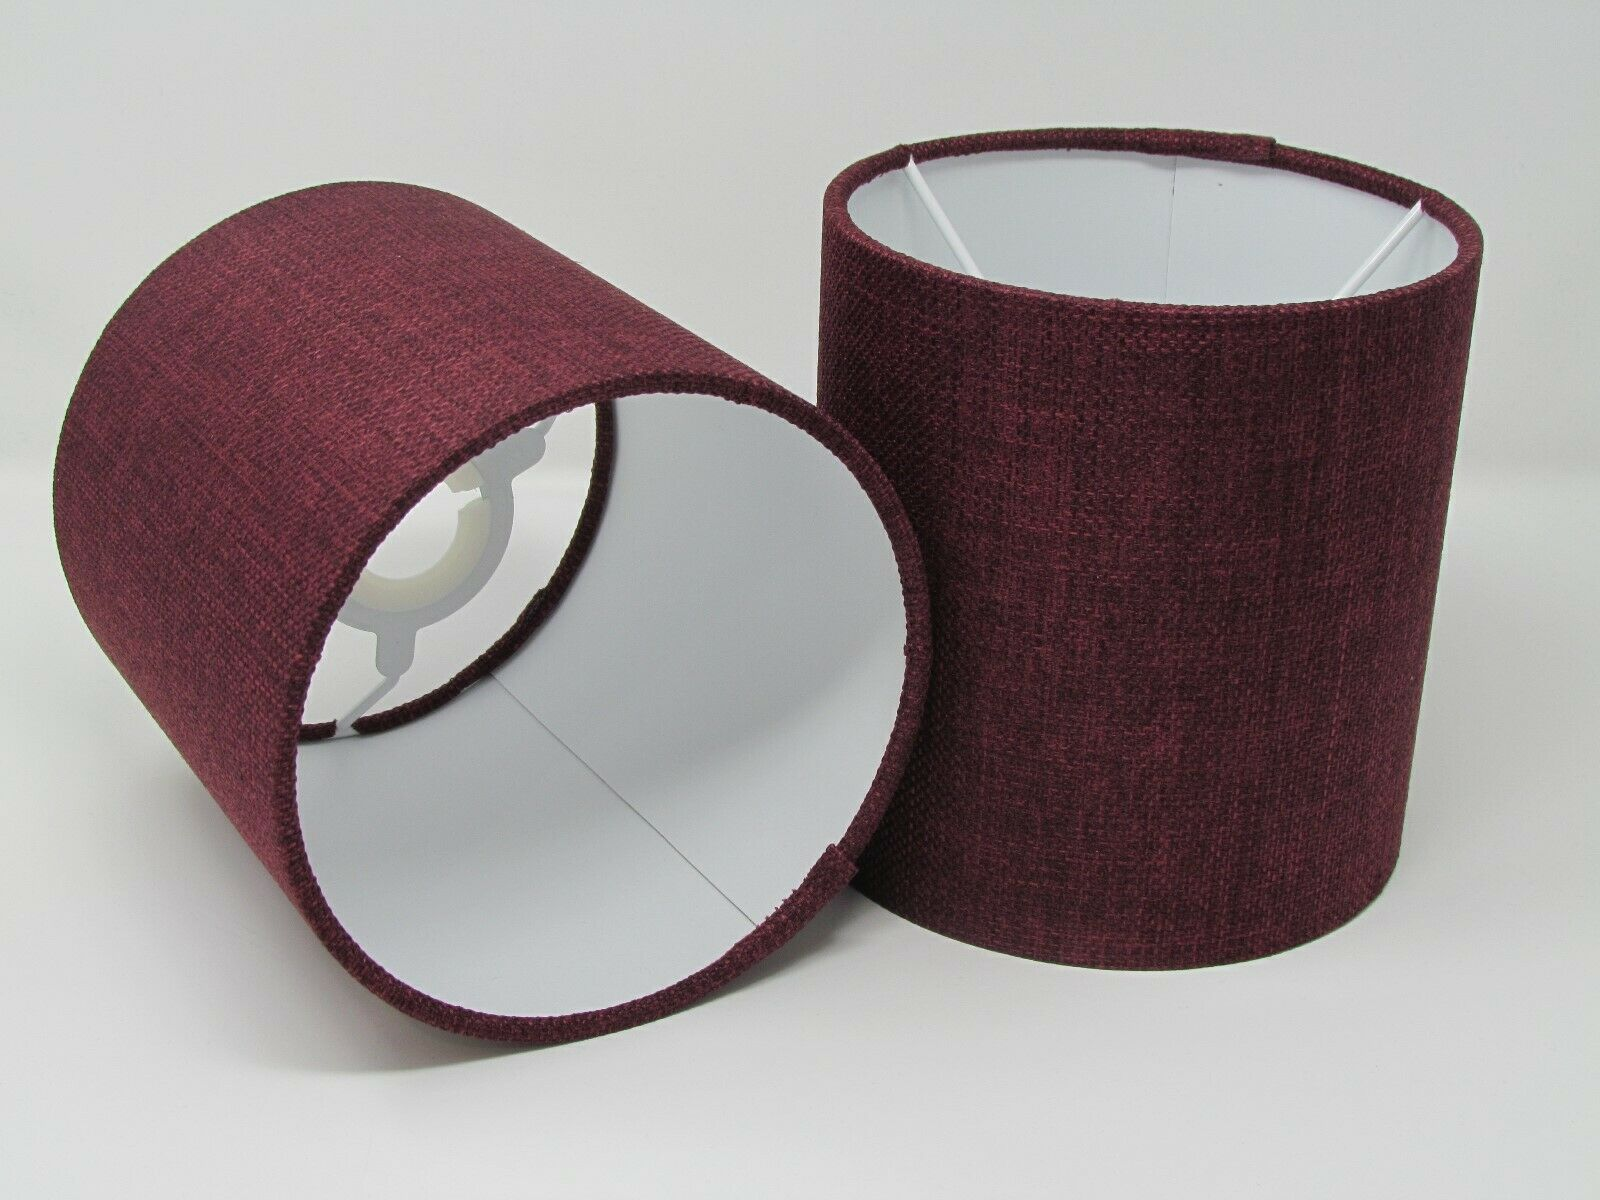 Plum Texturot Woven Drum Lampshade Ceiling Shade Statement Contemporary